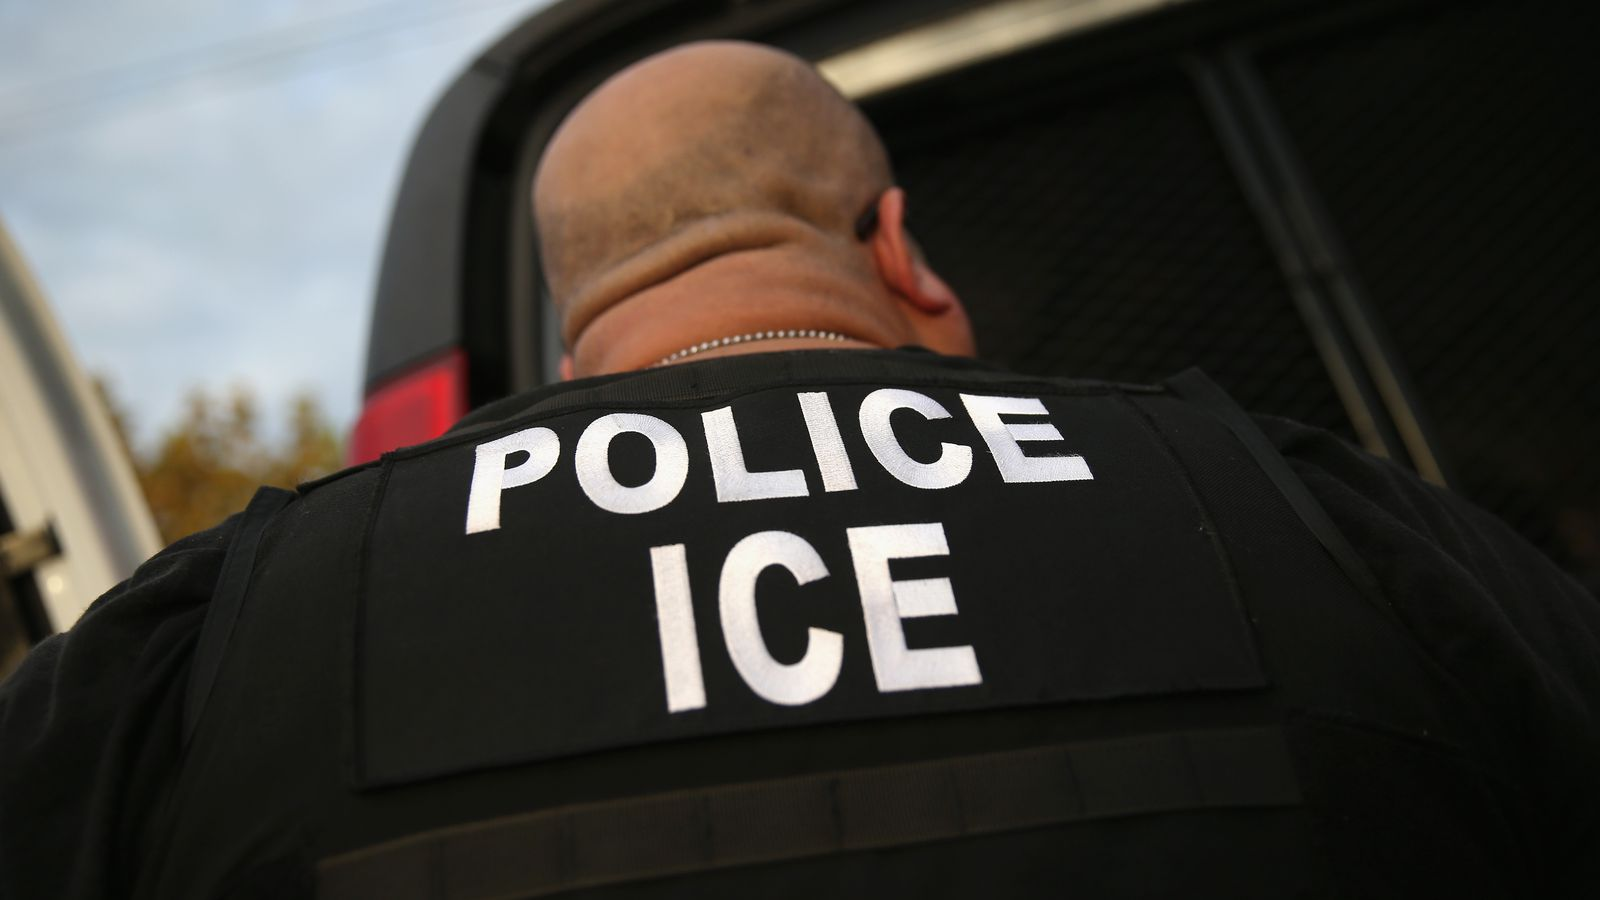 theverge.com - Russell Brandom - That immigration checkpoint you heard about is probably fake